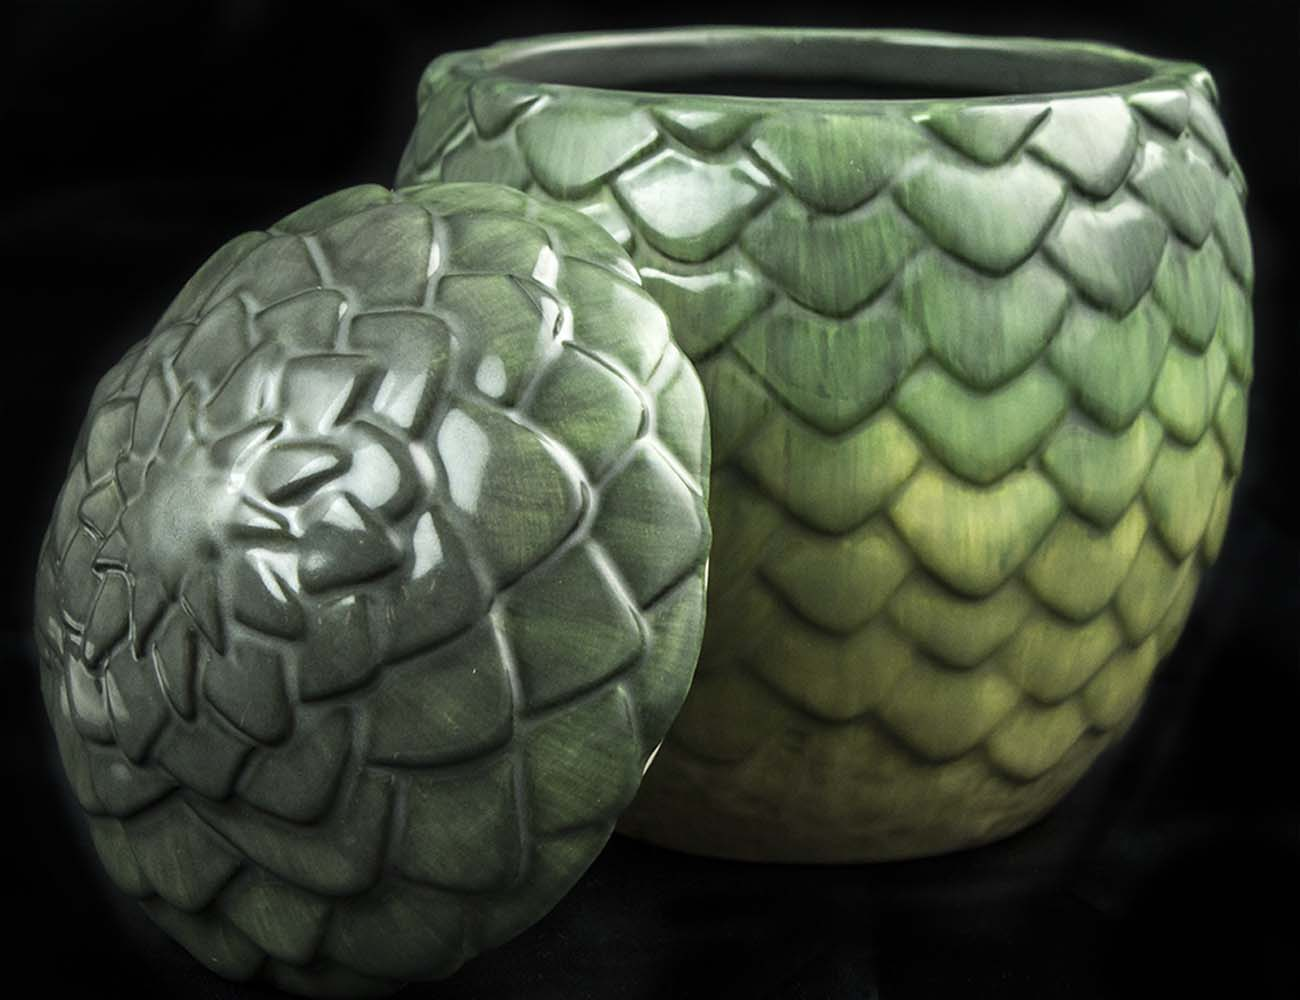 Game+Of+Thrones+Dragon+Egg+Canister